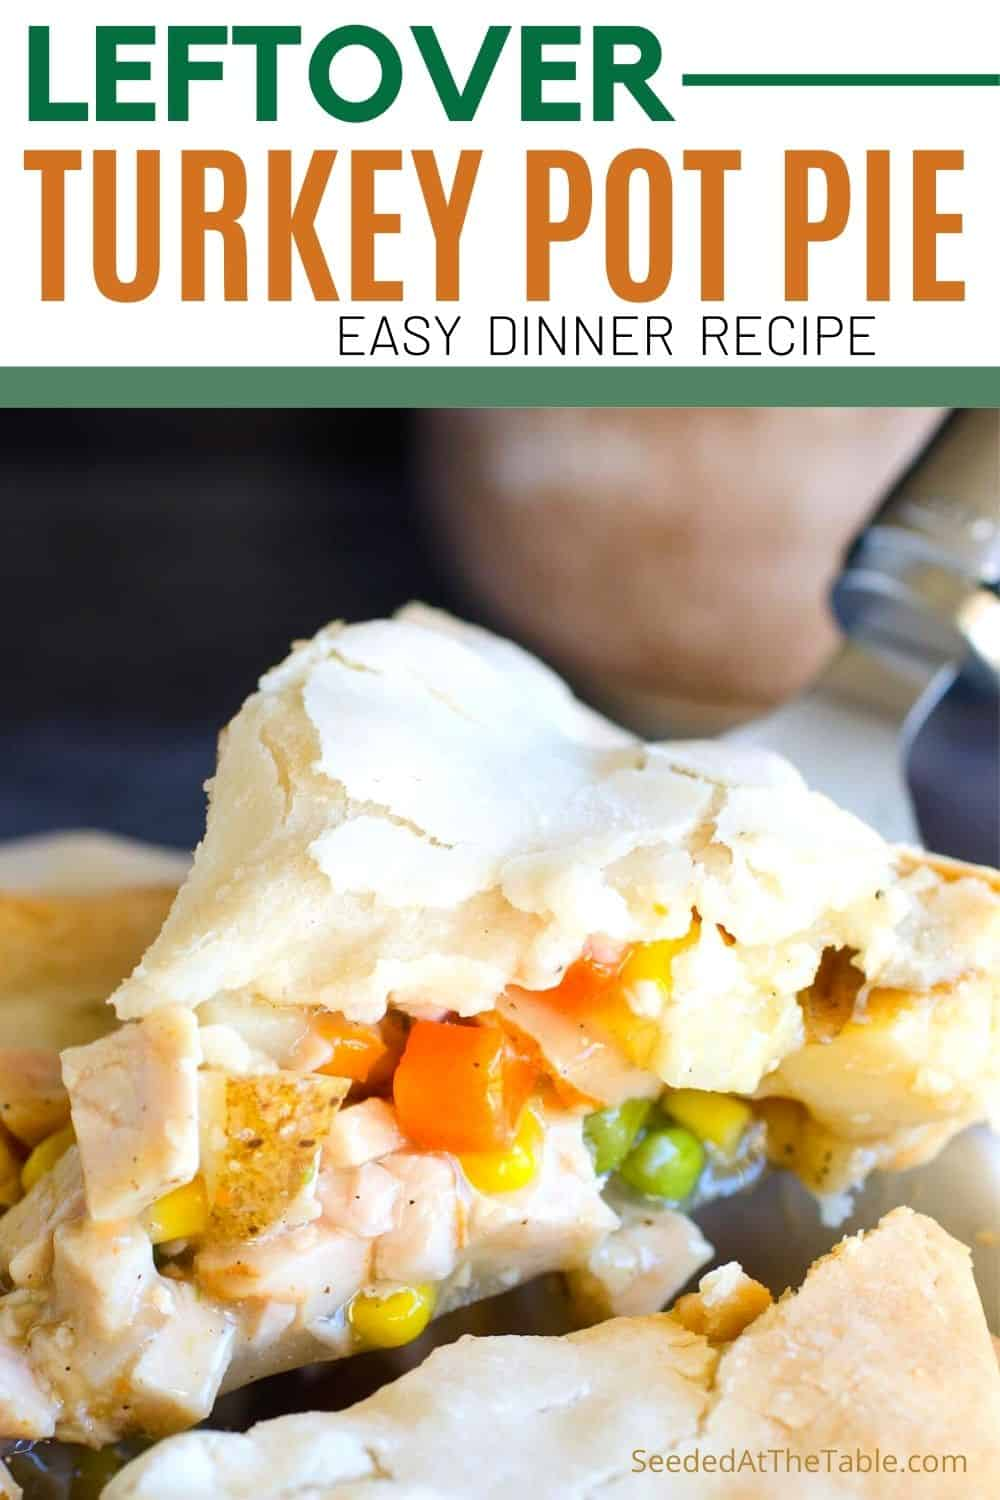 This turkey pot pie is a comforting no-fuss dinner recipe using leftover Thanksgiving turkey and other simple ingredients.